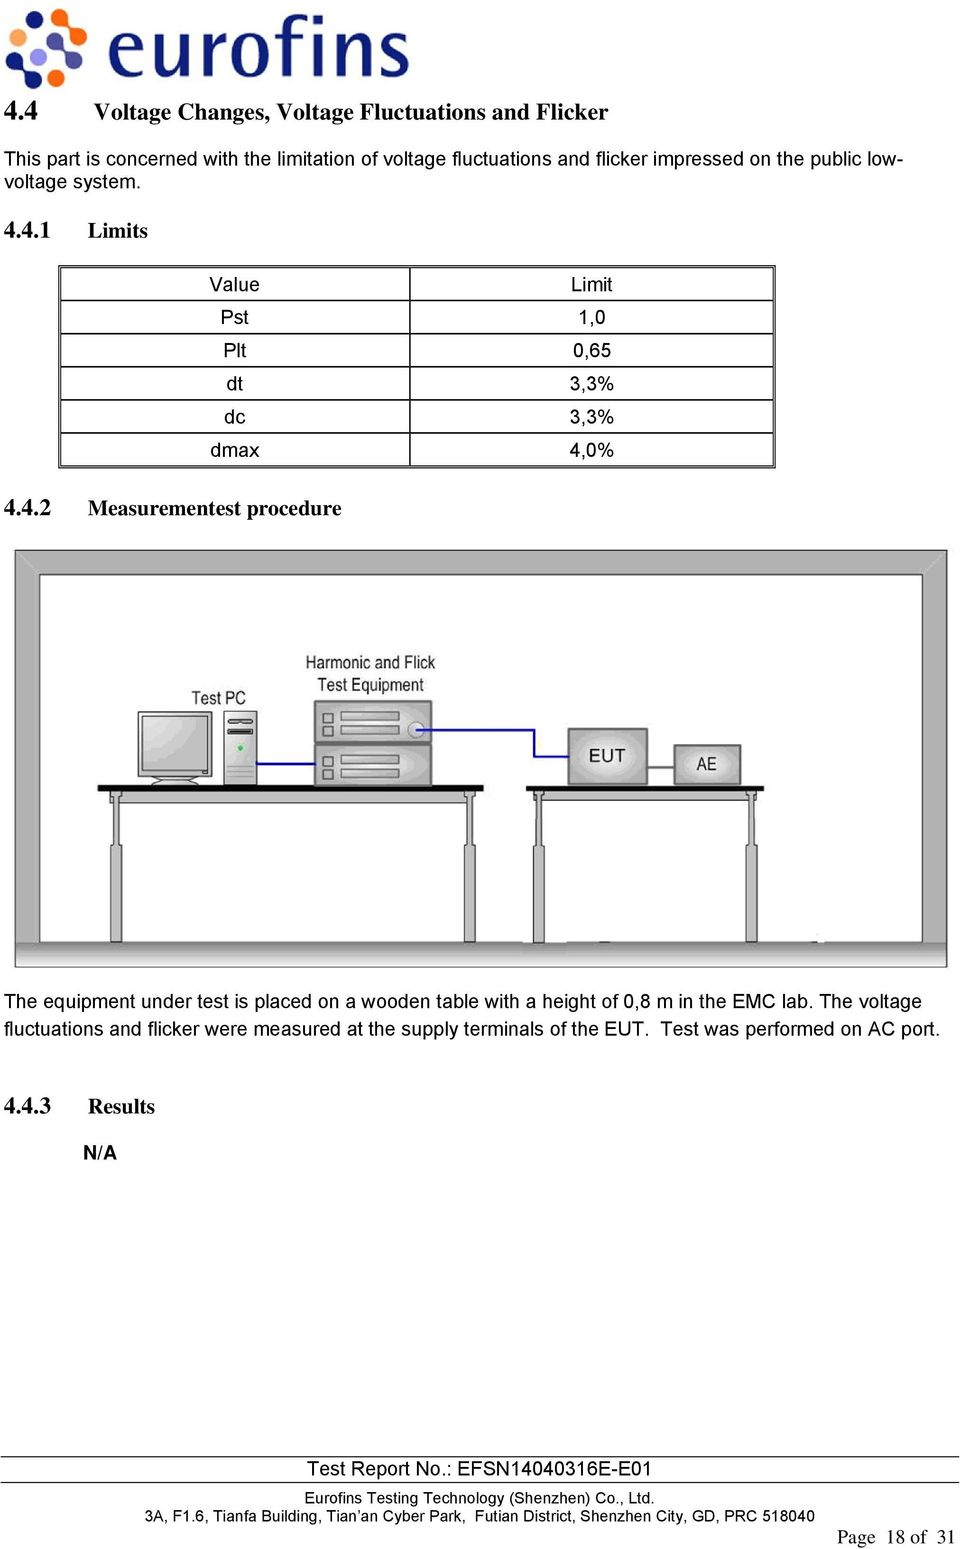 4.1 Limits 4.4.2 Measurementest procedure Value Limit Pst 1,0 Plt 0,65 dt 3,3% dc 3,3% dmax 4,0% The equipment under test is